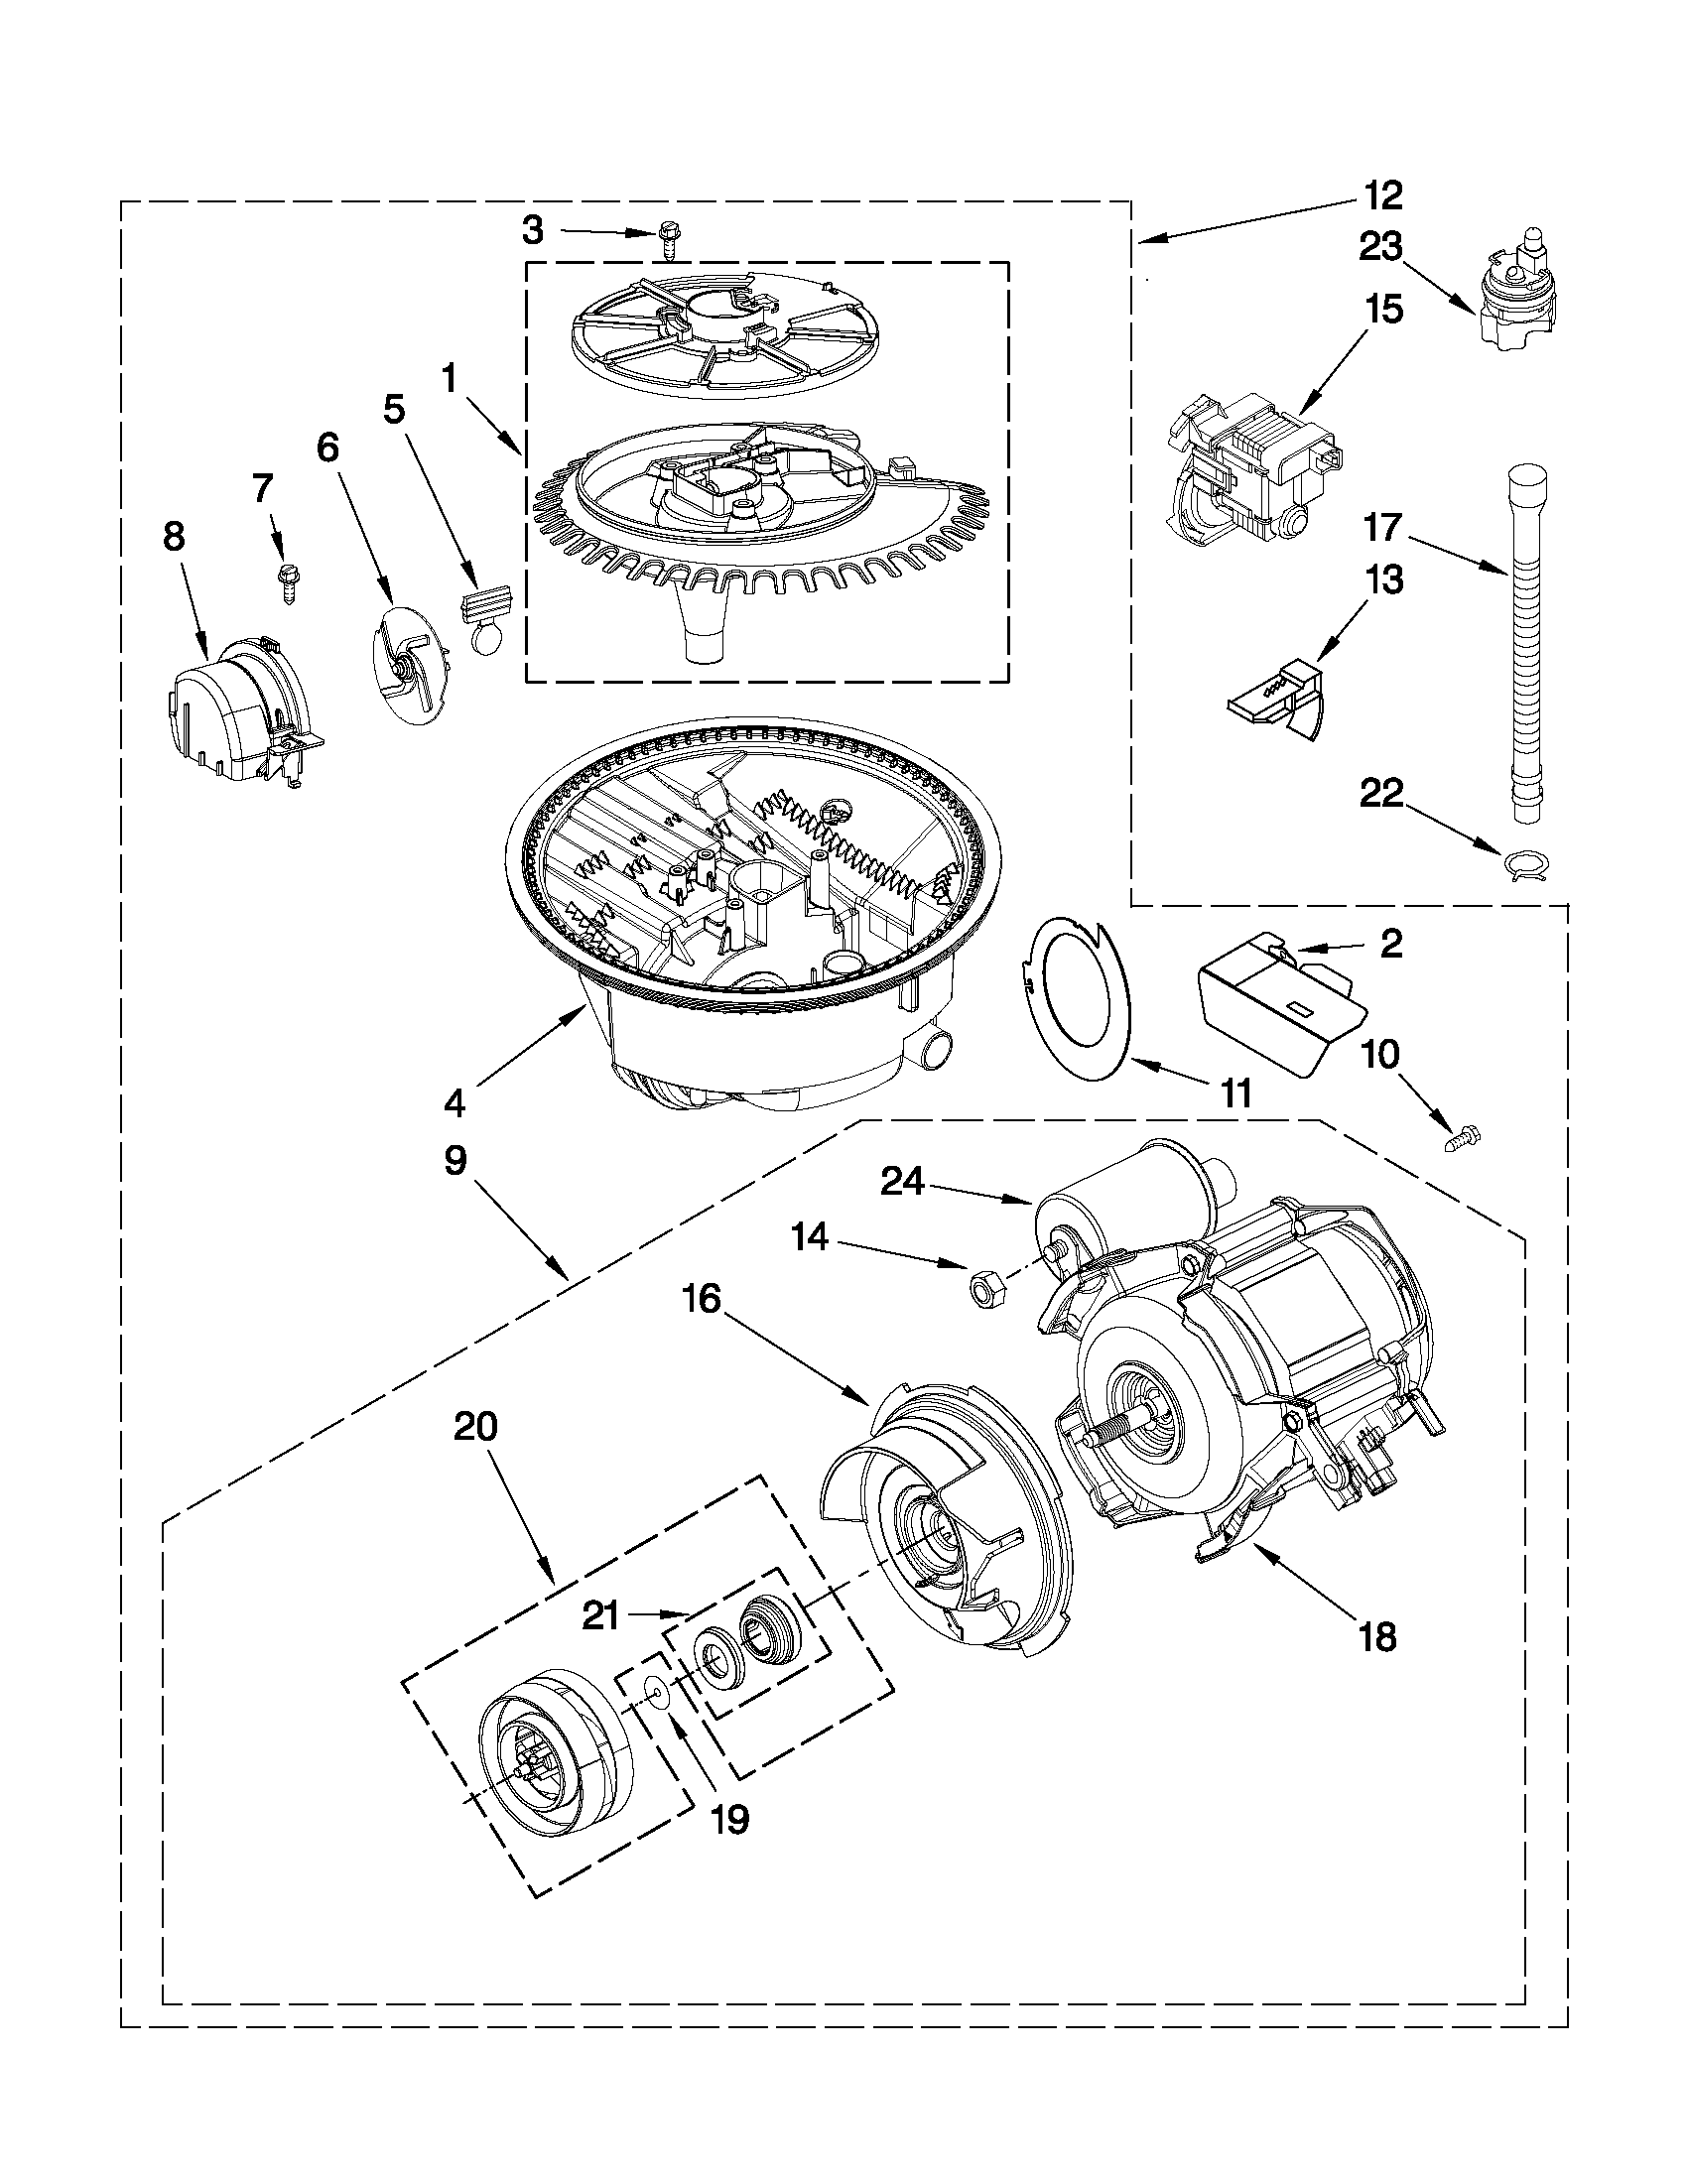 Kitchenaid model KUDC10FXSS3 dishwasher genuine parts